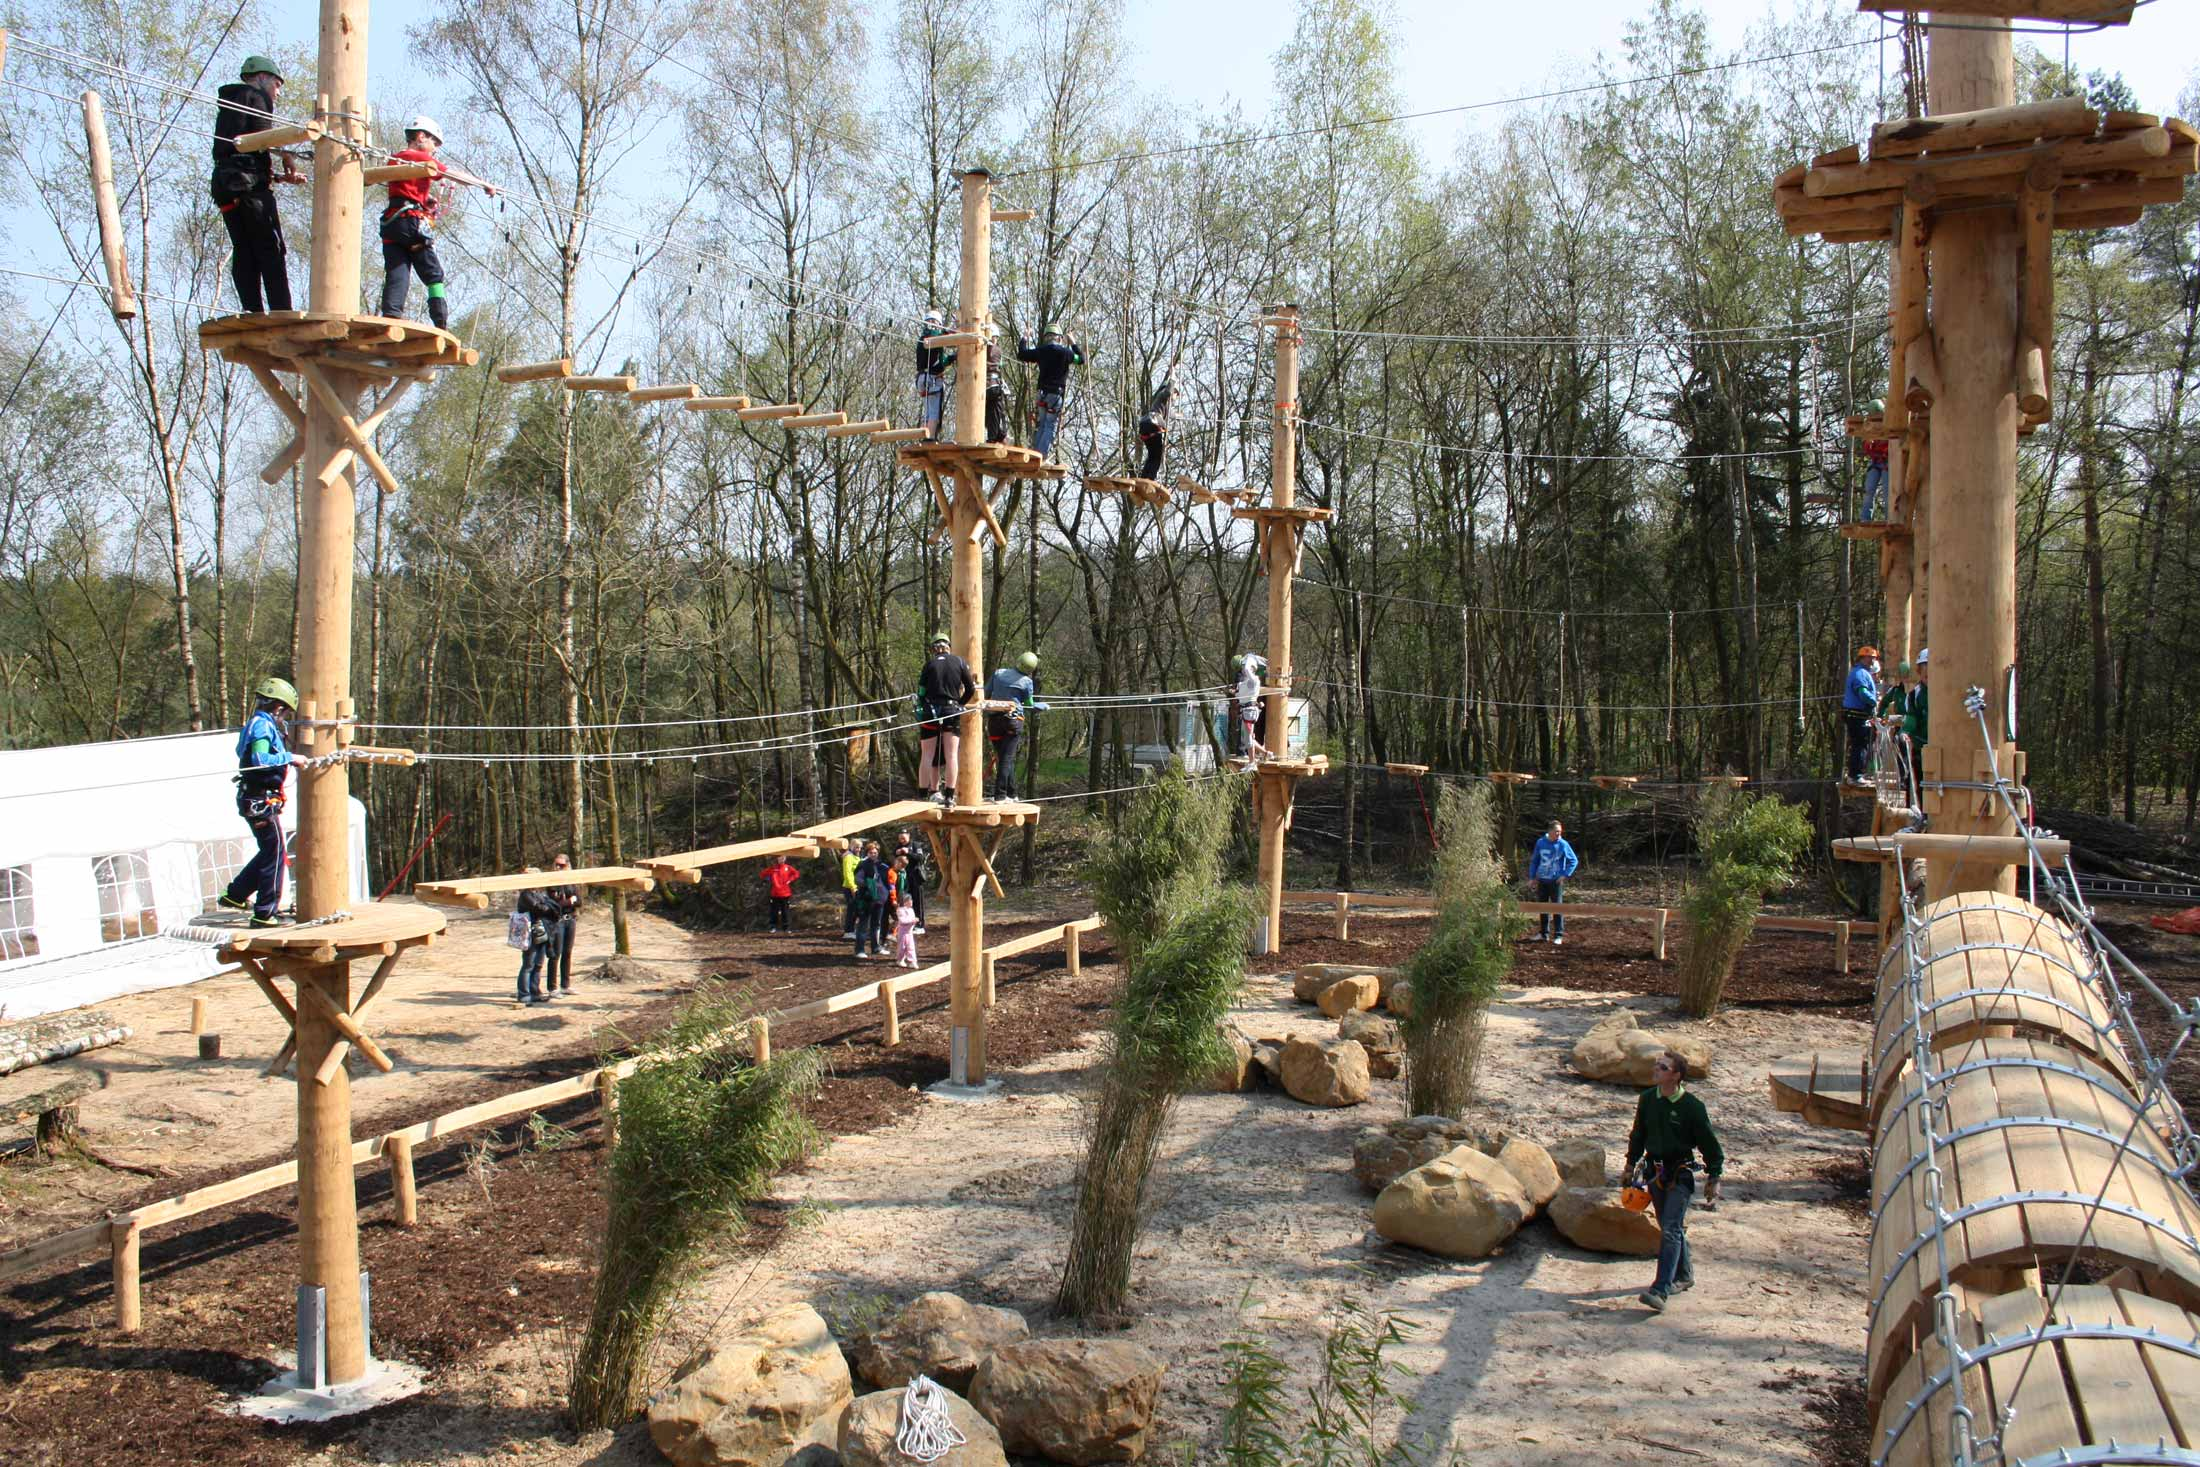 Marinas Adventure Park